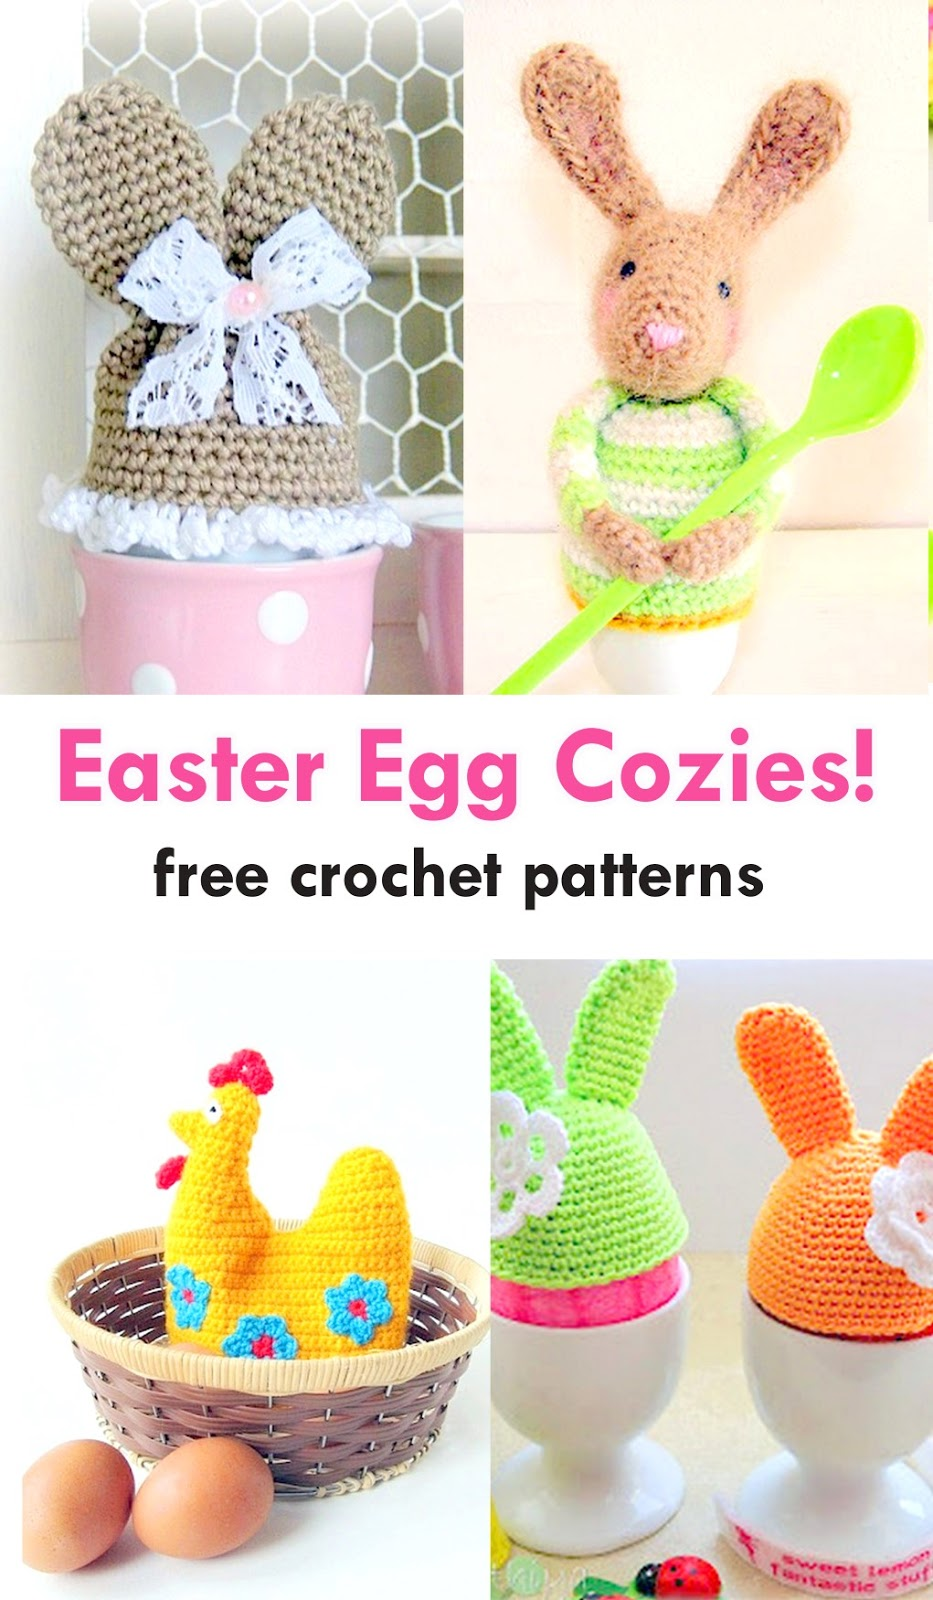 AmVaBe Crochet: Easter Egg Cozies: Free Crochet Patterns!